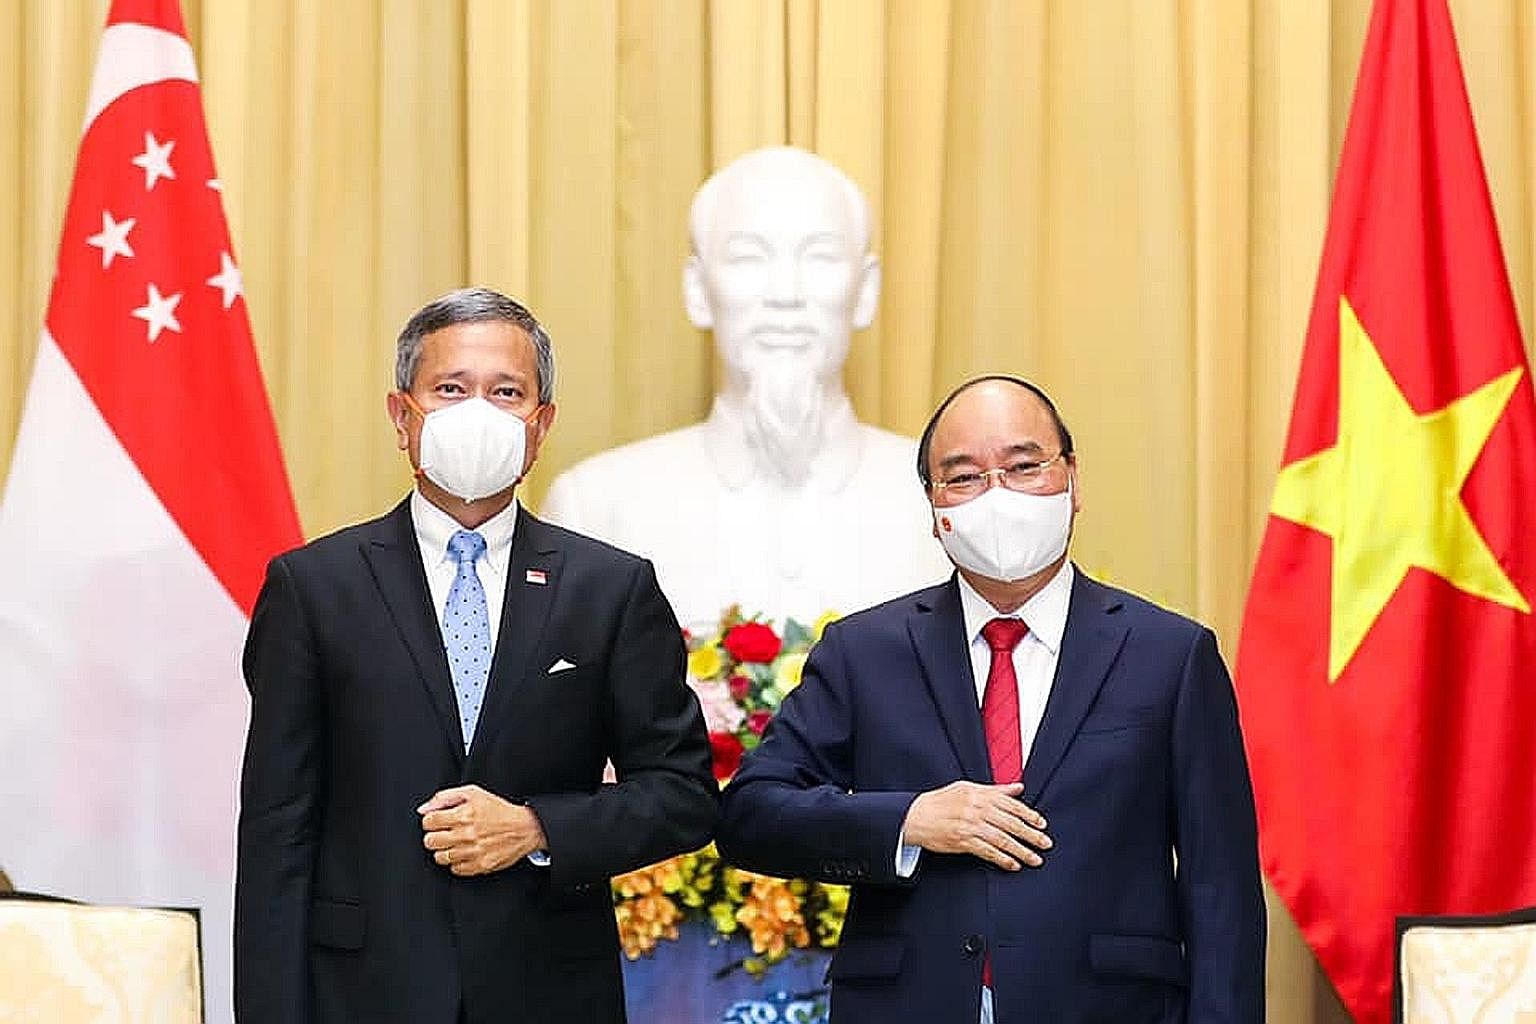 Singapore Foreign Minister Vivian Balakrishnan with Vietnam President Nguyen Xuan Phuc during his official visit to the country.